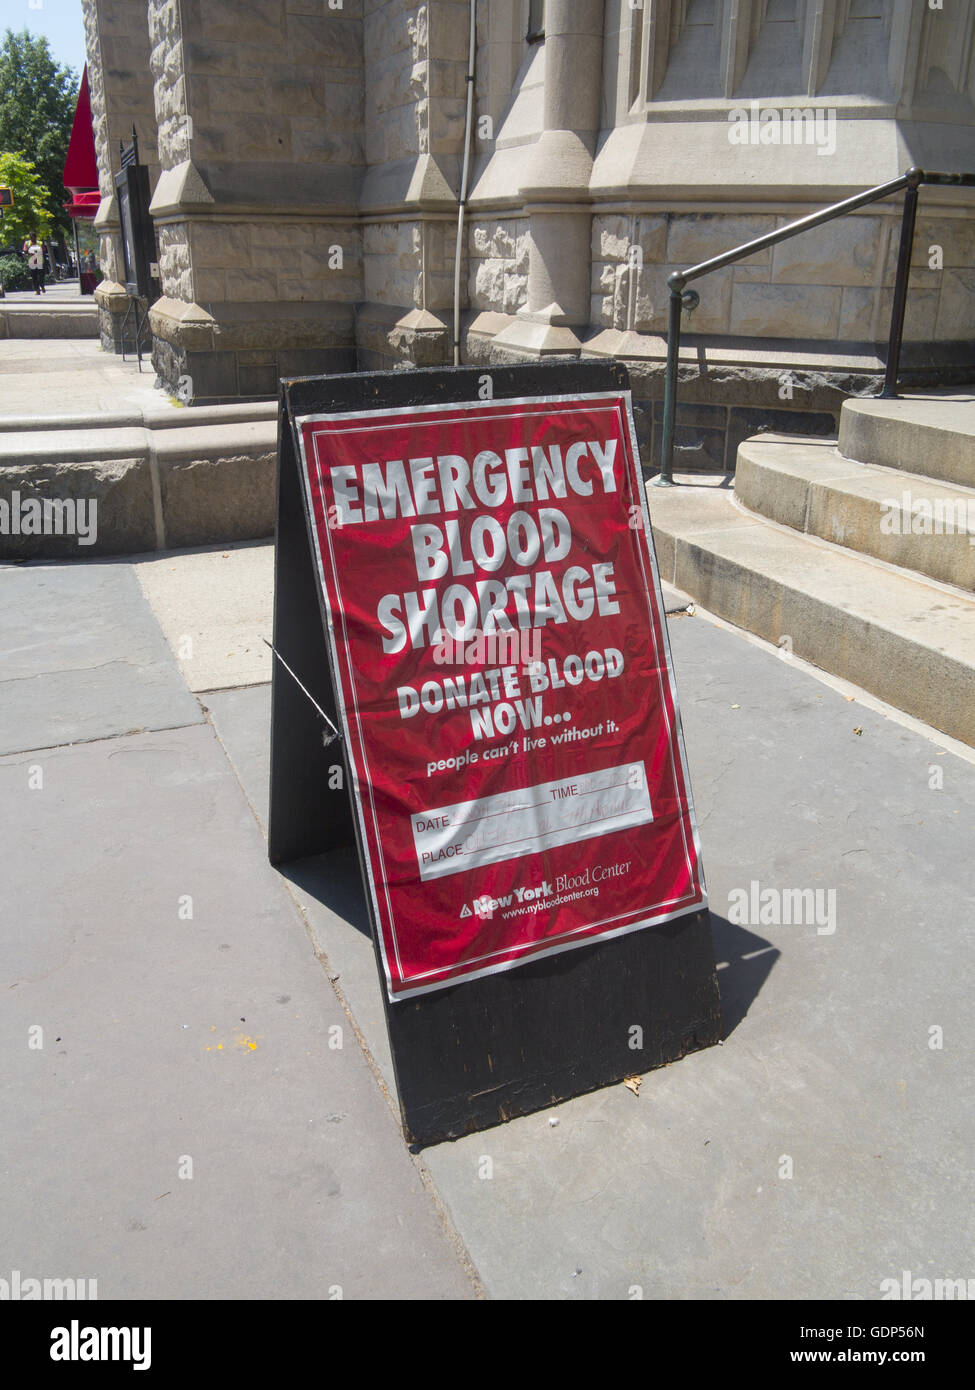 Sign to give blood in front of a church in Park Slope, Brooklyn, NY. - Stock Image